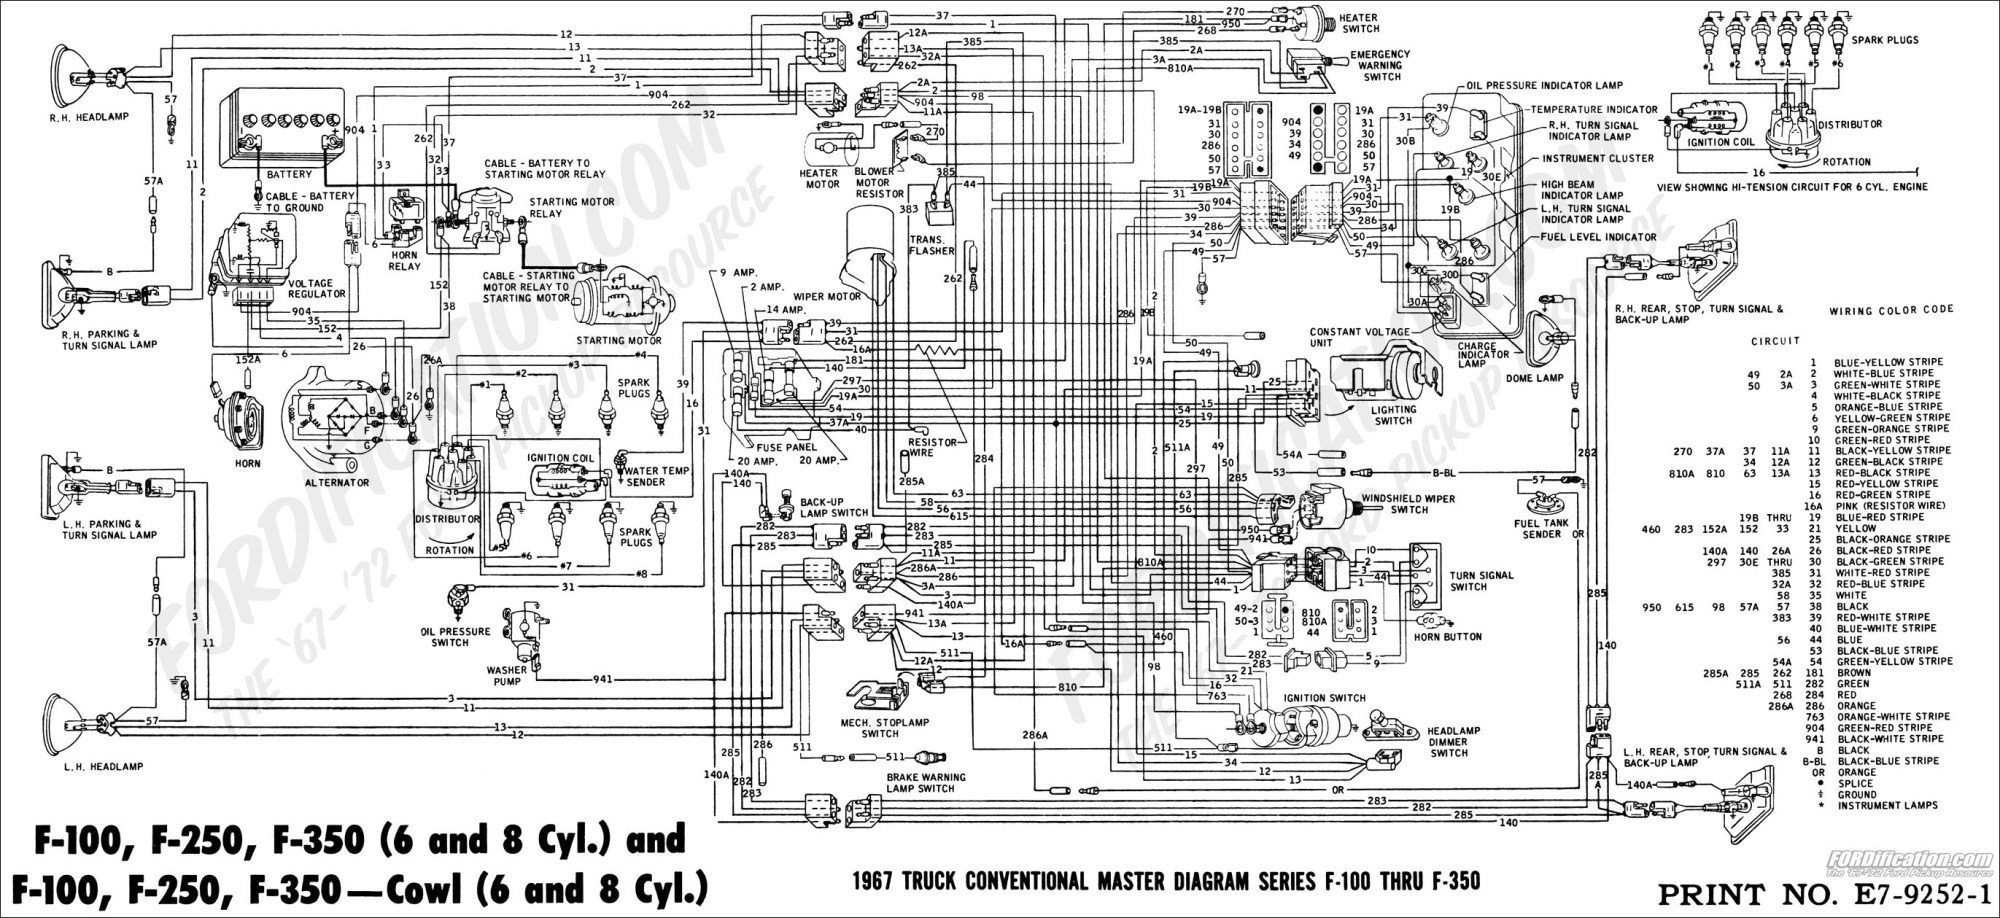 hight resolution of 1990 ford f150 wiring harness wiring diagram page 1995 ford f150 engine wiring harness 1995 ford f150 wiring harness